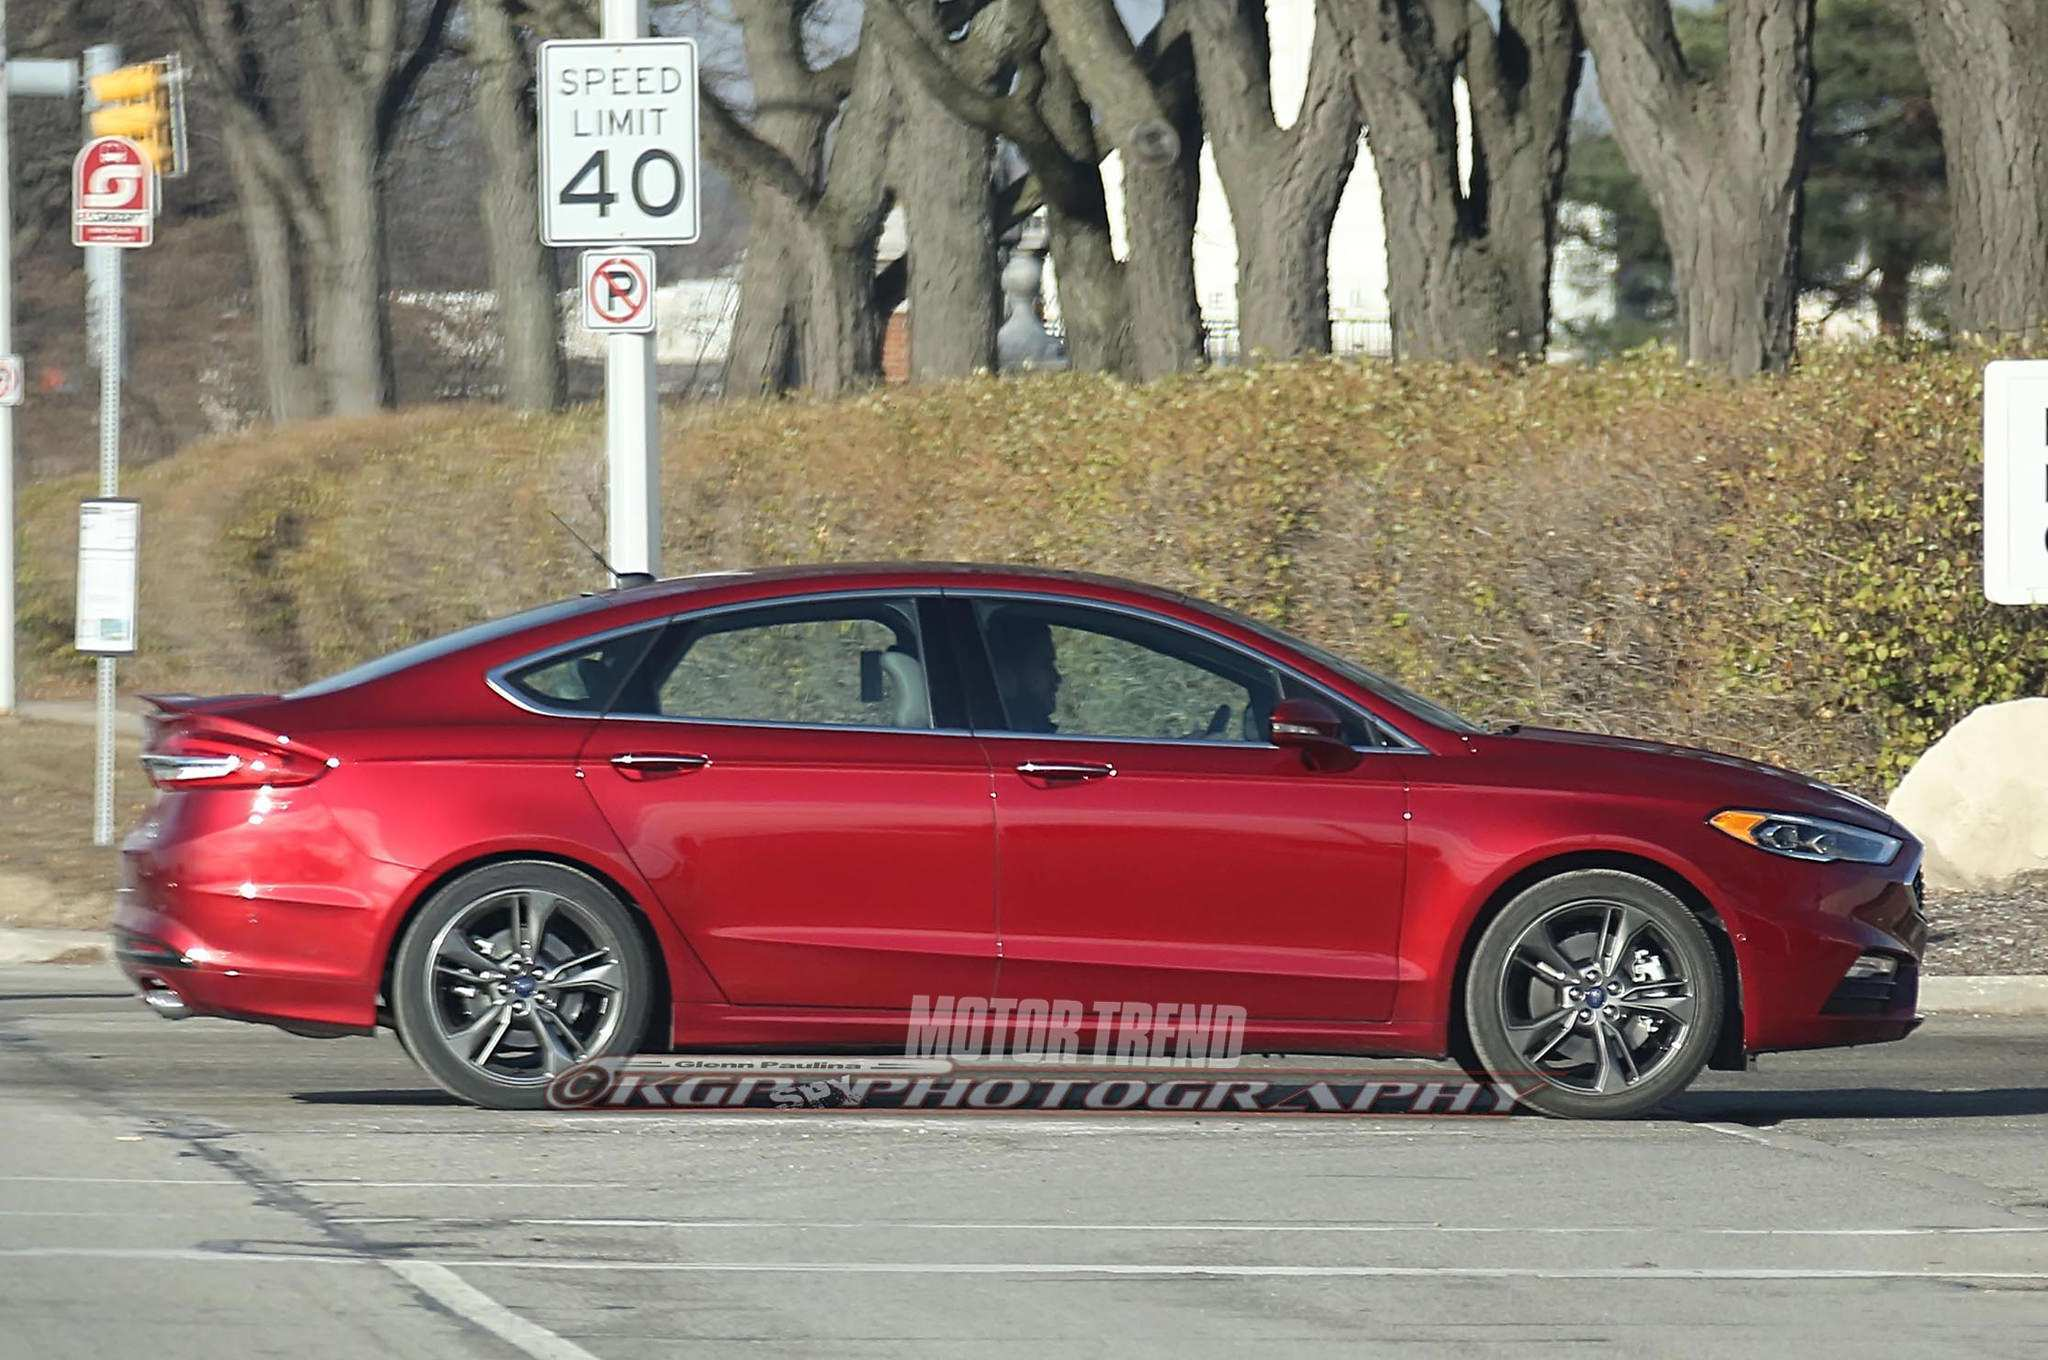 61 New 2020 The Spy Shots Ford Fusion Overview